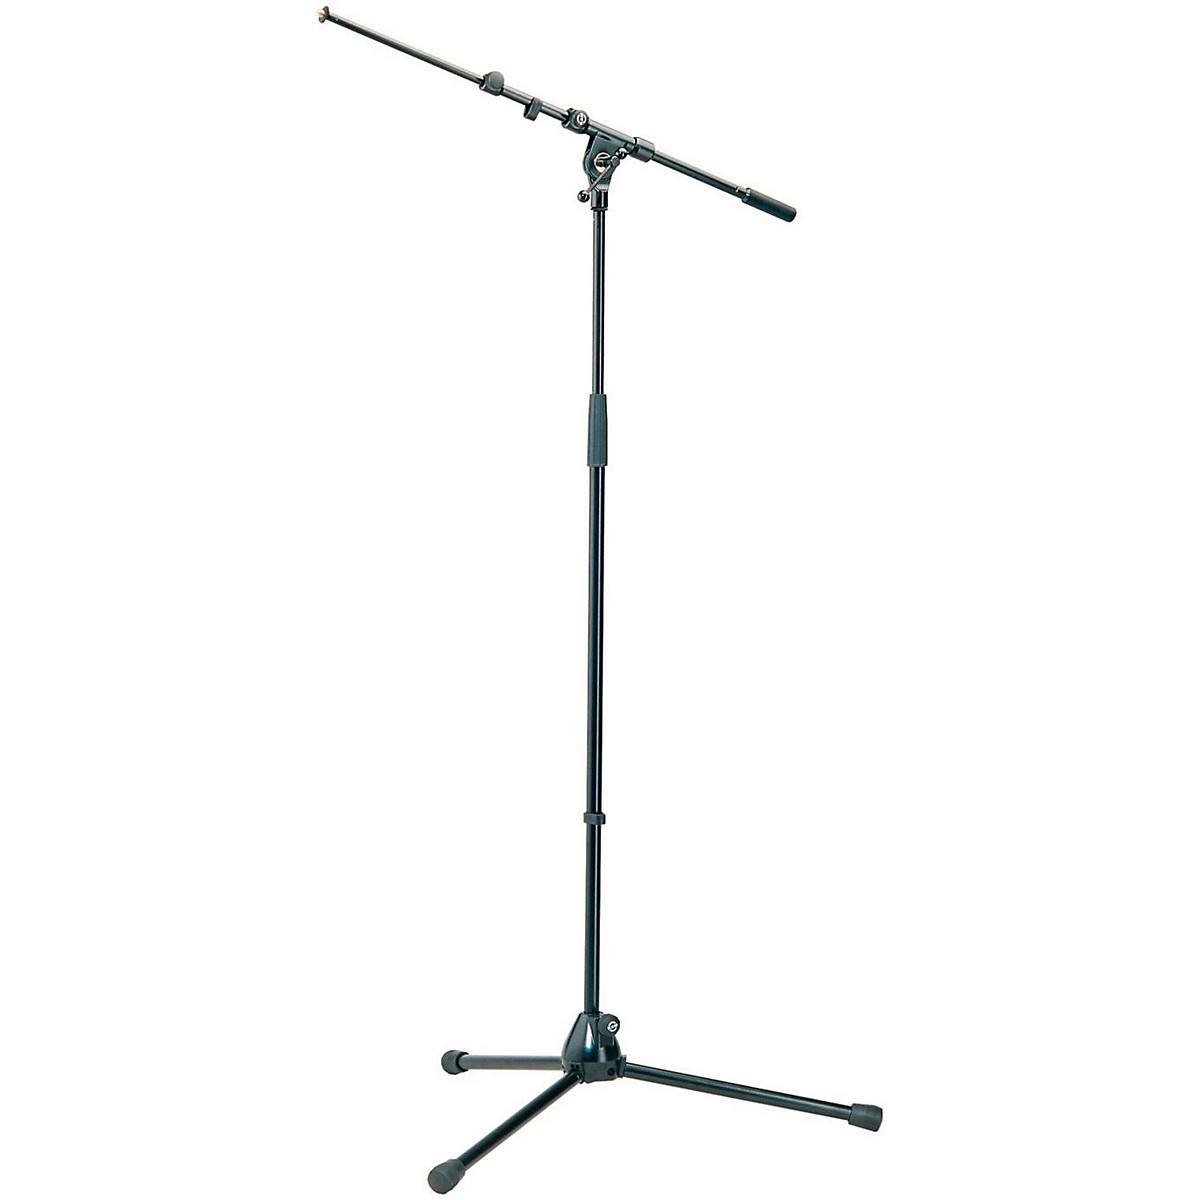 K&M Professional Top-Line Tripod Microphone Stand with Telescoping Boom Arm - Black